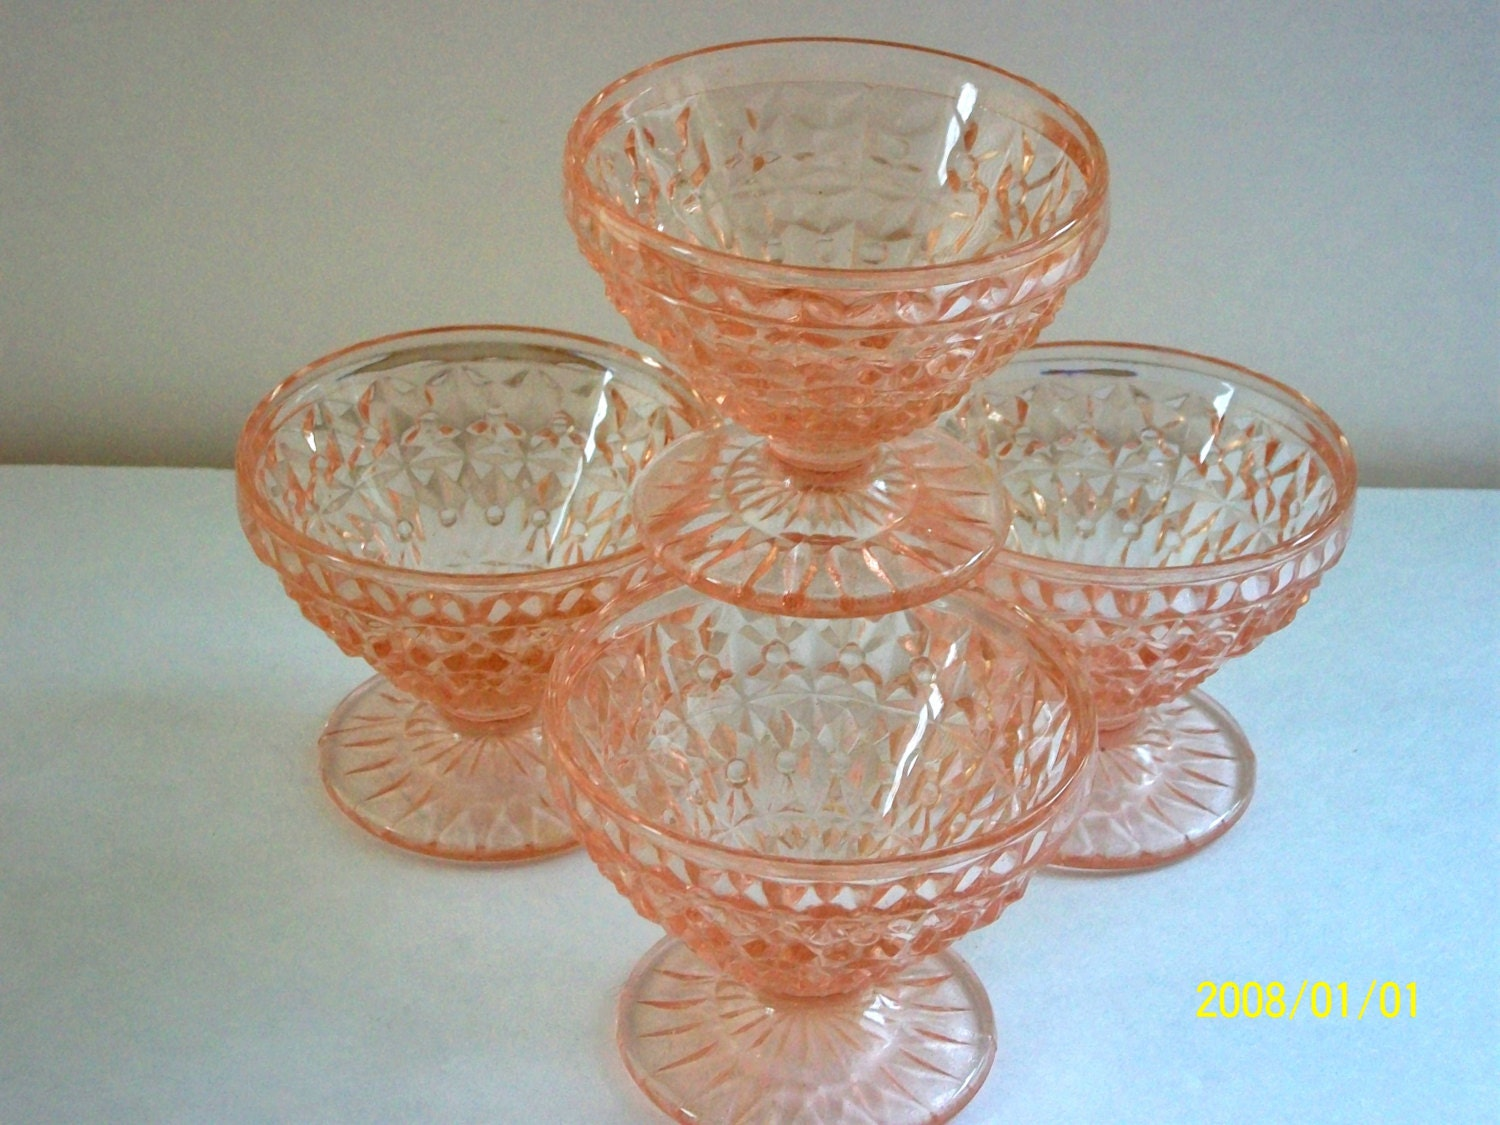 Pink depression glass desert dishes ice cream bowls 1930s for Cuisine 1930